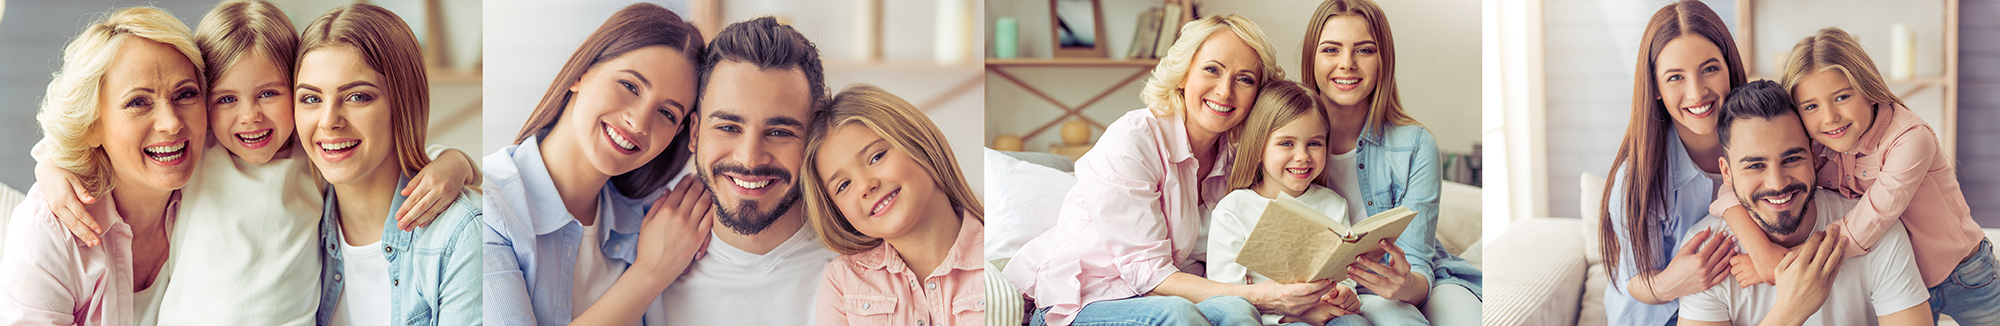 portrait photography family grandmother daughter children cuddle sofa posing father